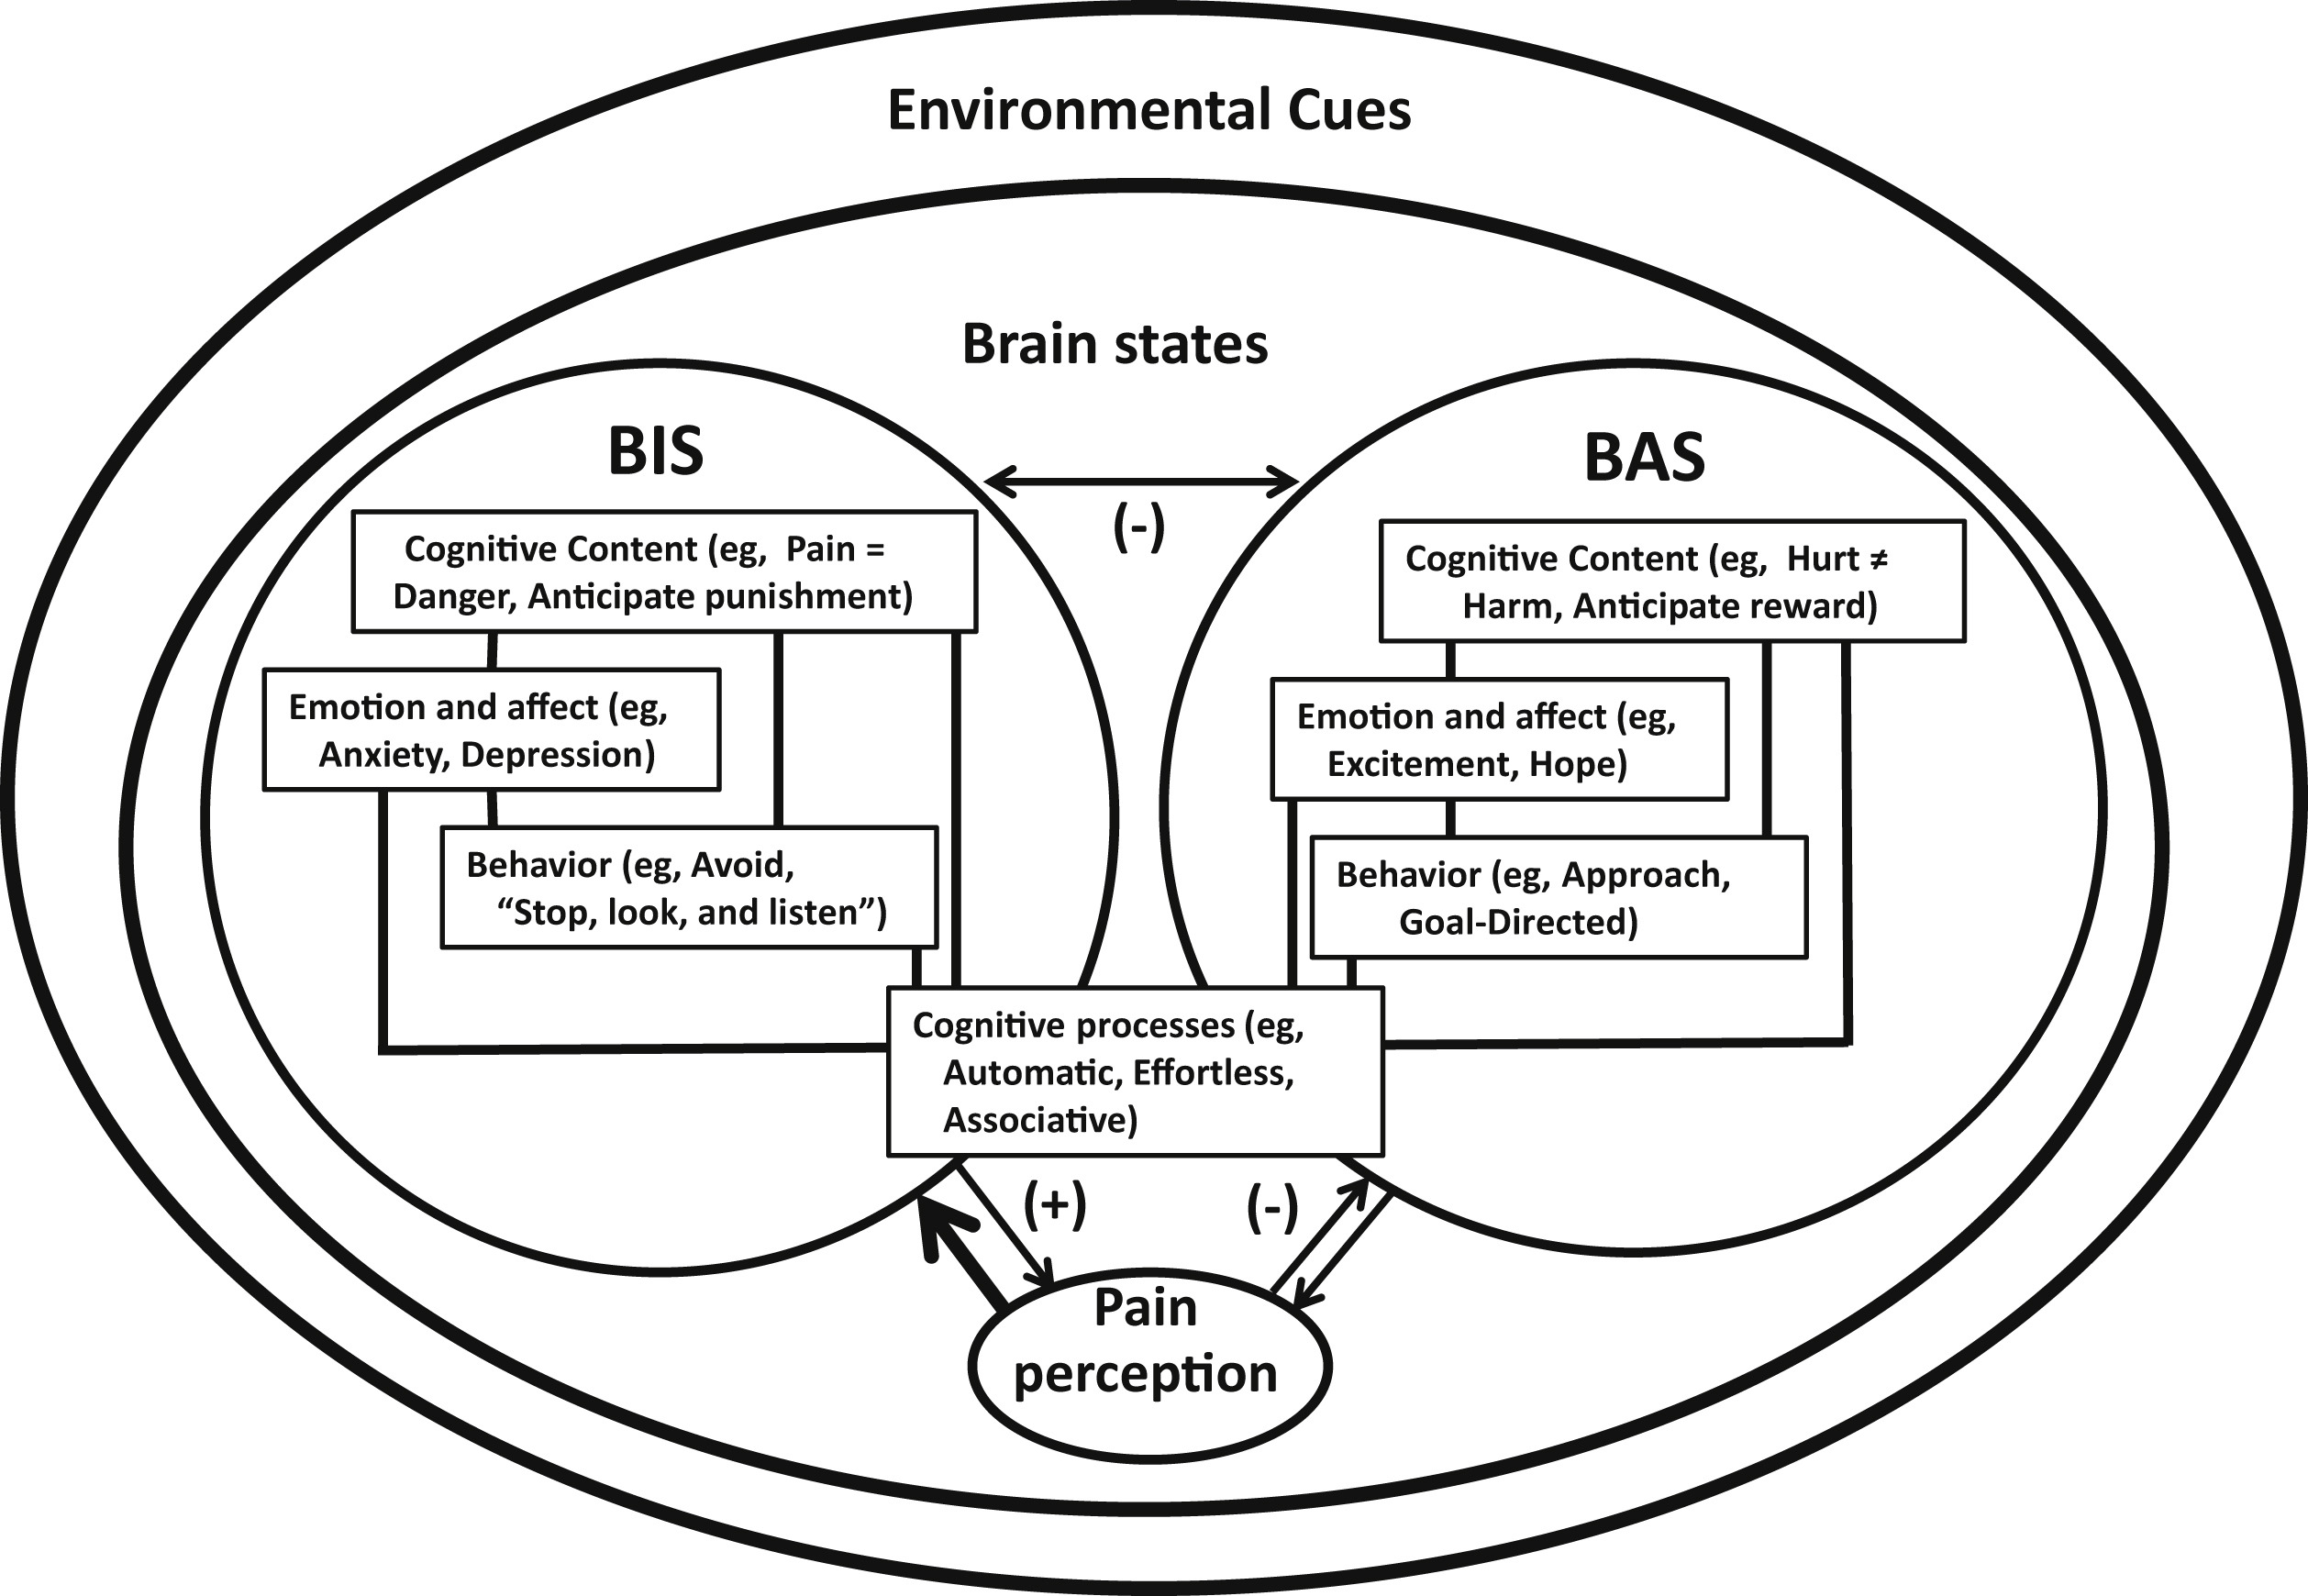 The Behavioral Activation and Inhibition Systems